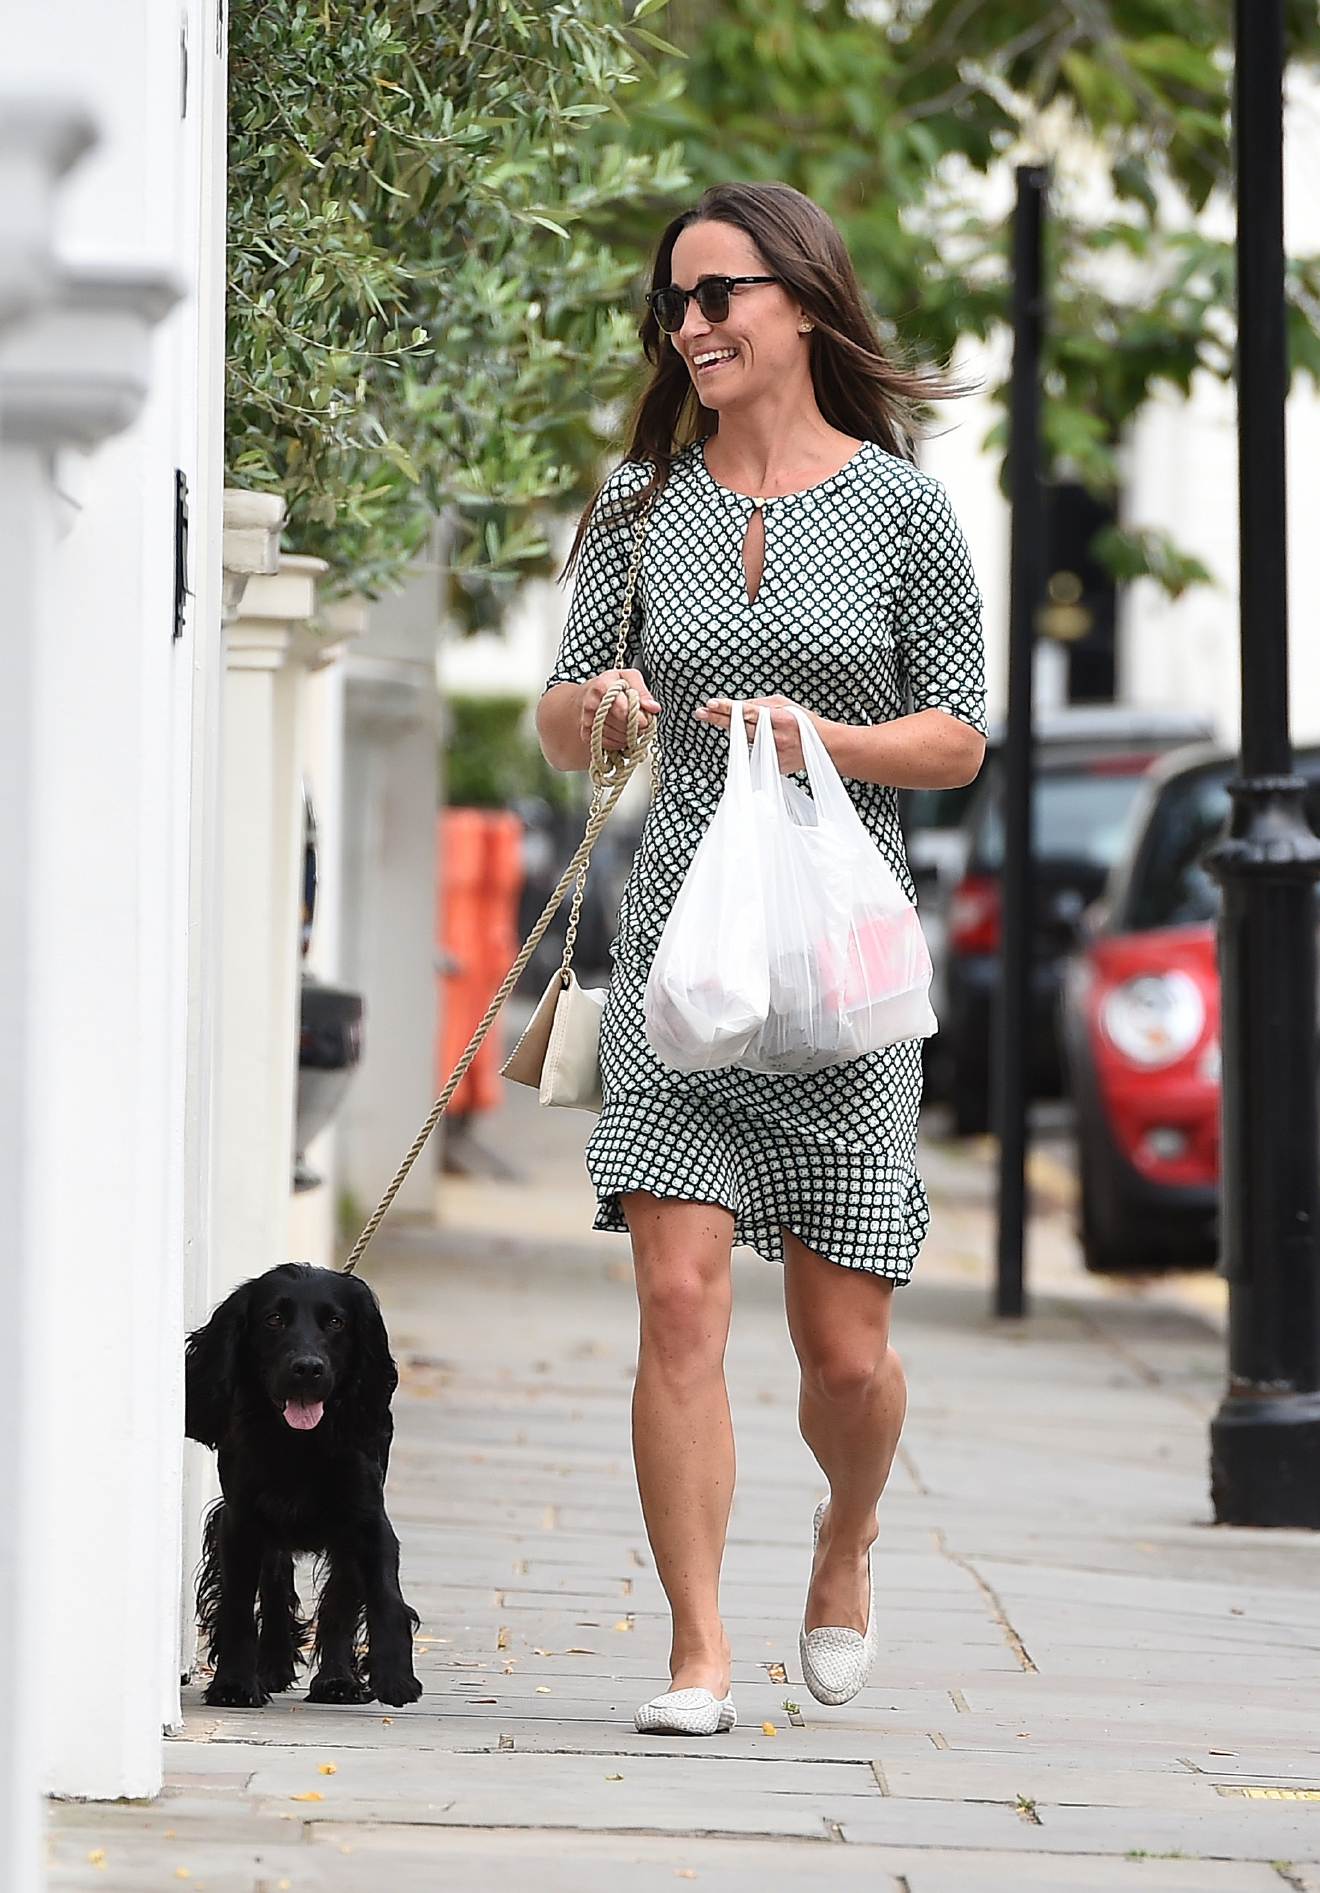 Pippa Middleton takes her dog for a walk in Chelsea, and picks up some shopping on the way. She was sporting her £200,000 engagement ring as she smiled at waiting photographers  Featuring: Pippa Middleton Where: London, United Kingdom When: 21 Jul 2016 Credit: Will Alexander/WENN.com